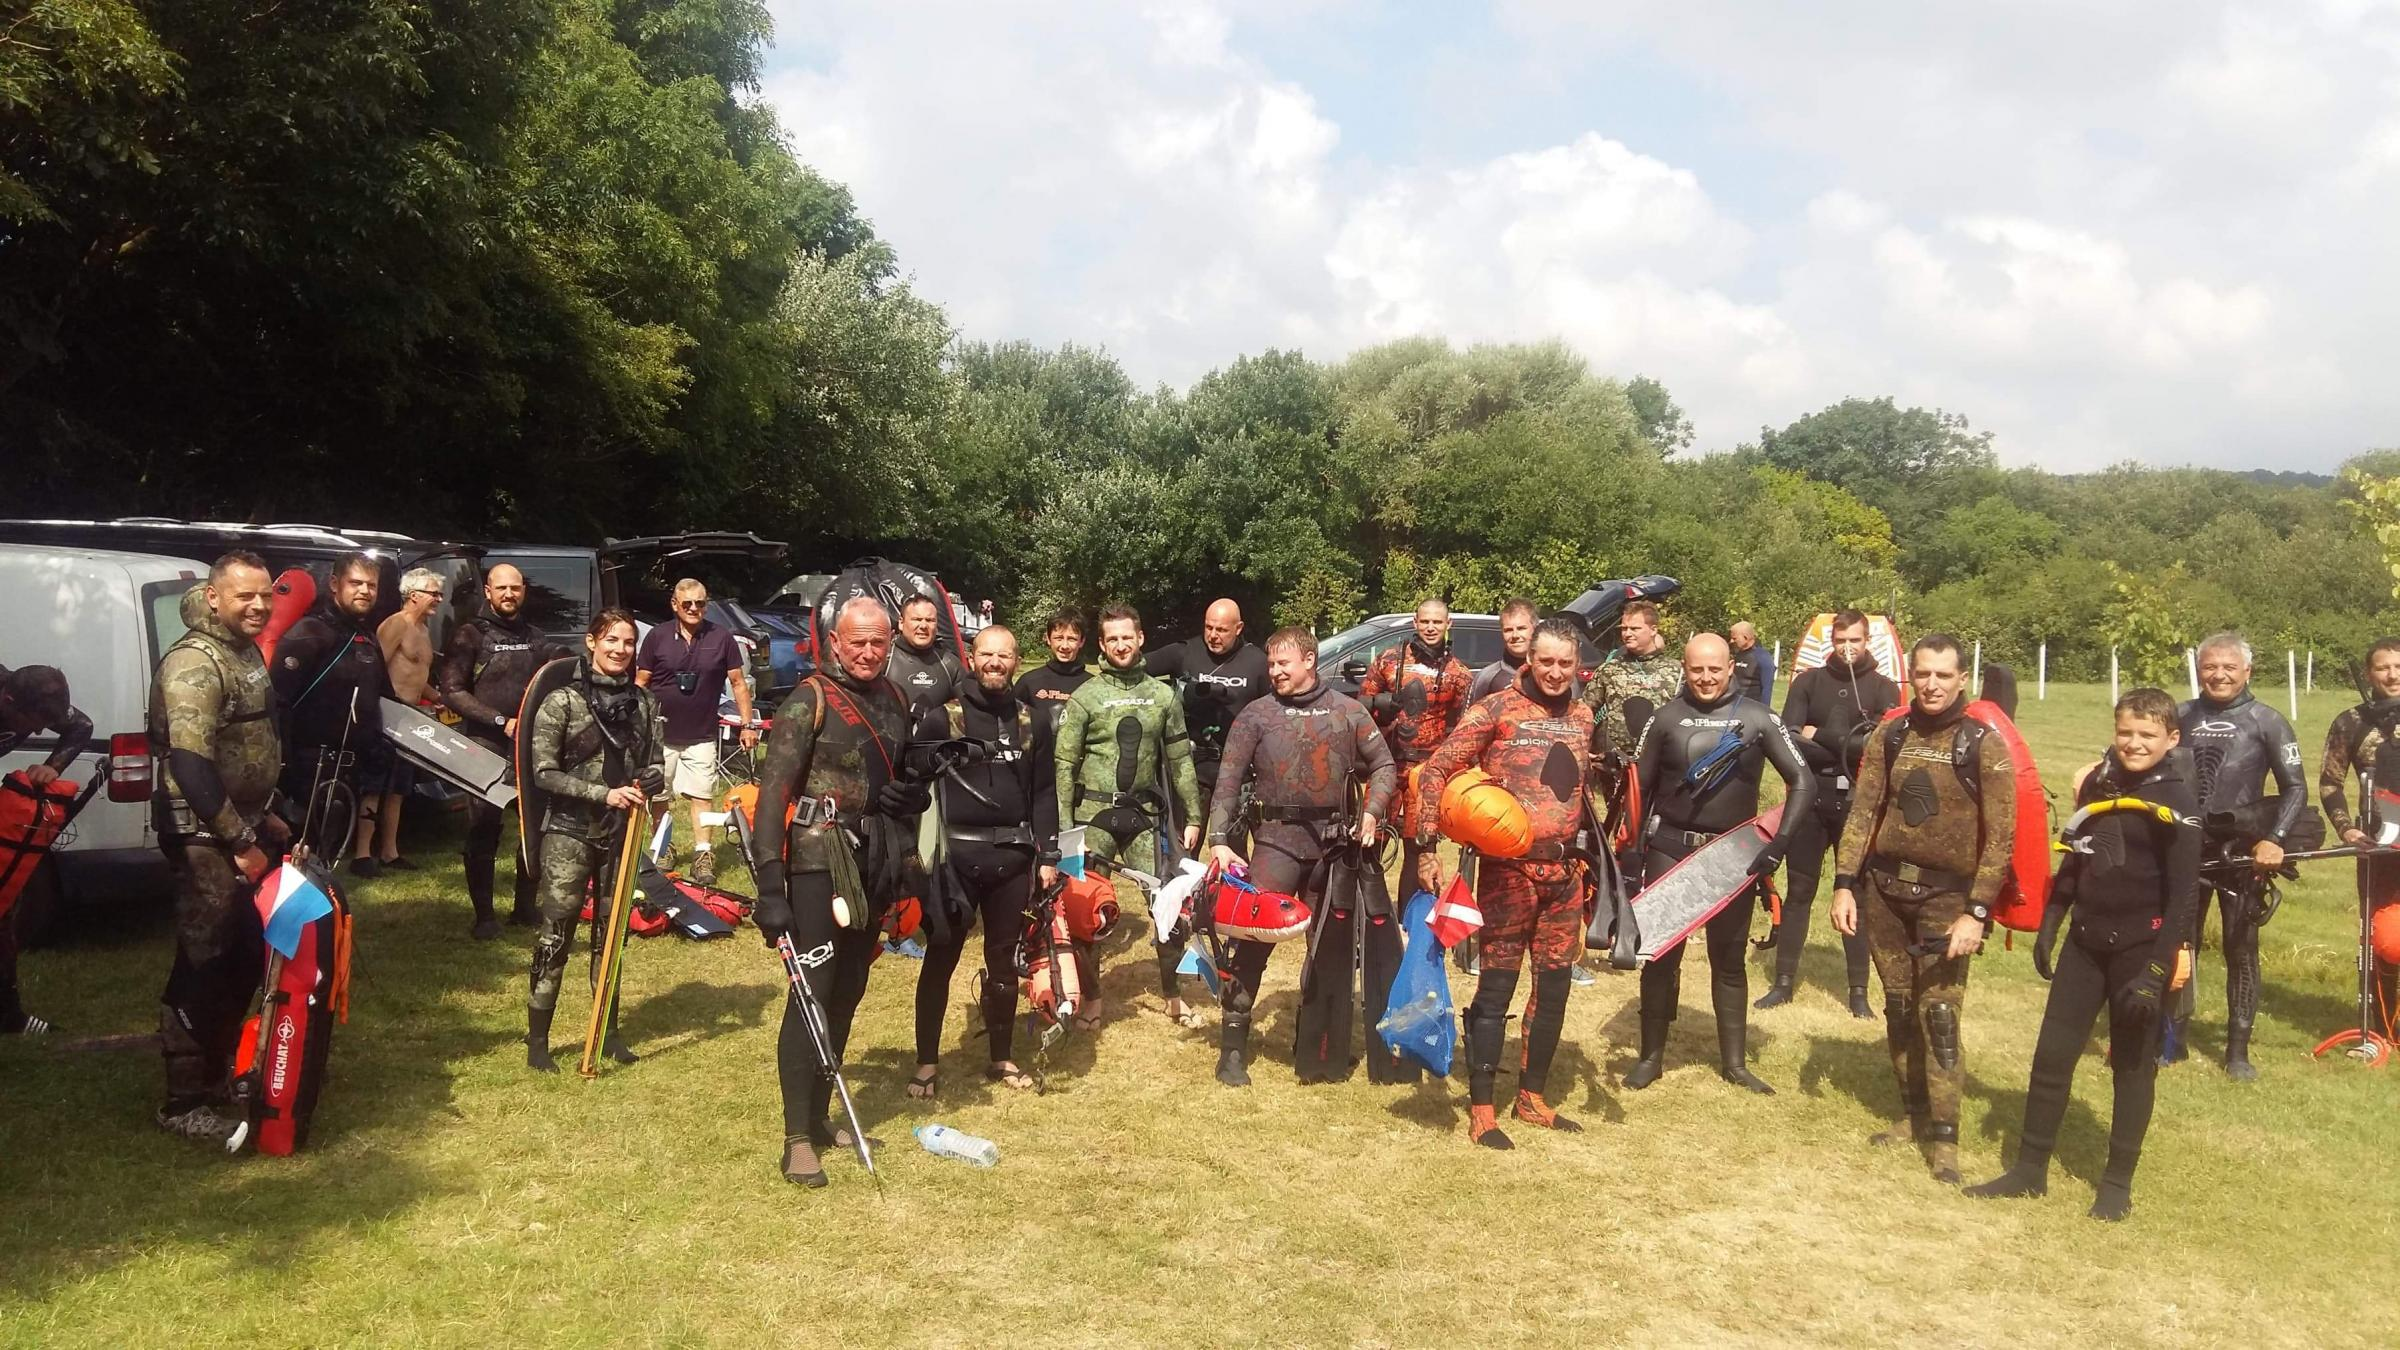 Spearfishing safety guide published at Ringstead Bay event in memory of Andrew Scott